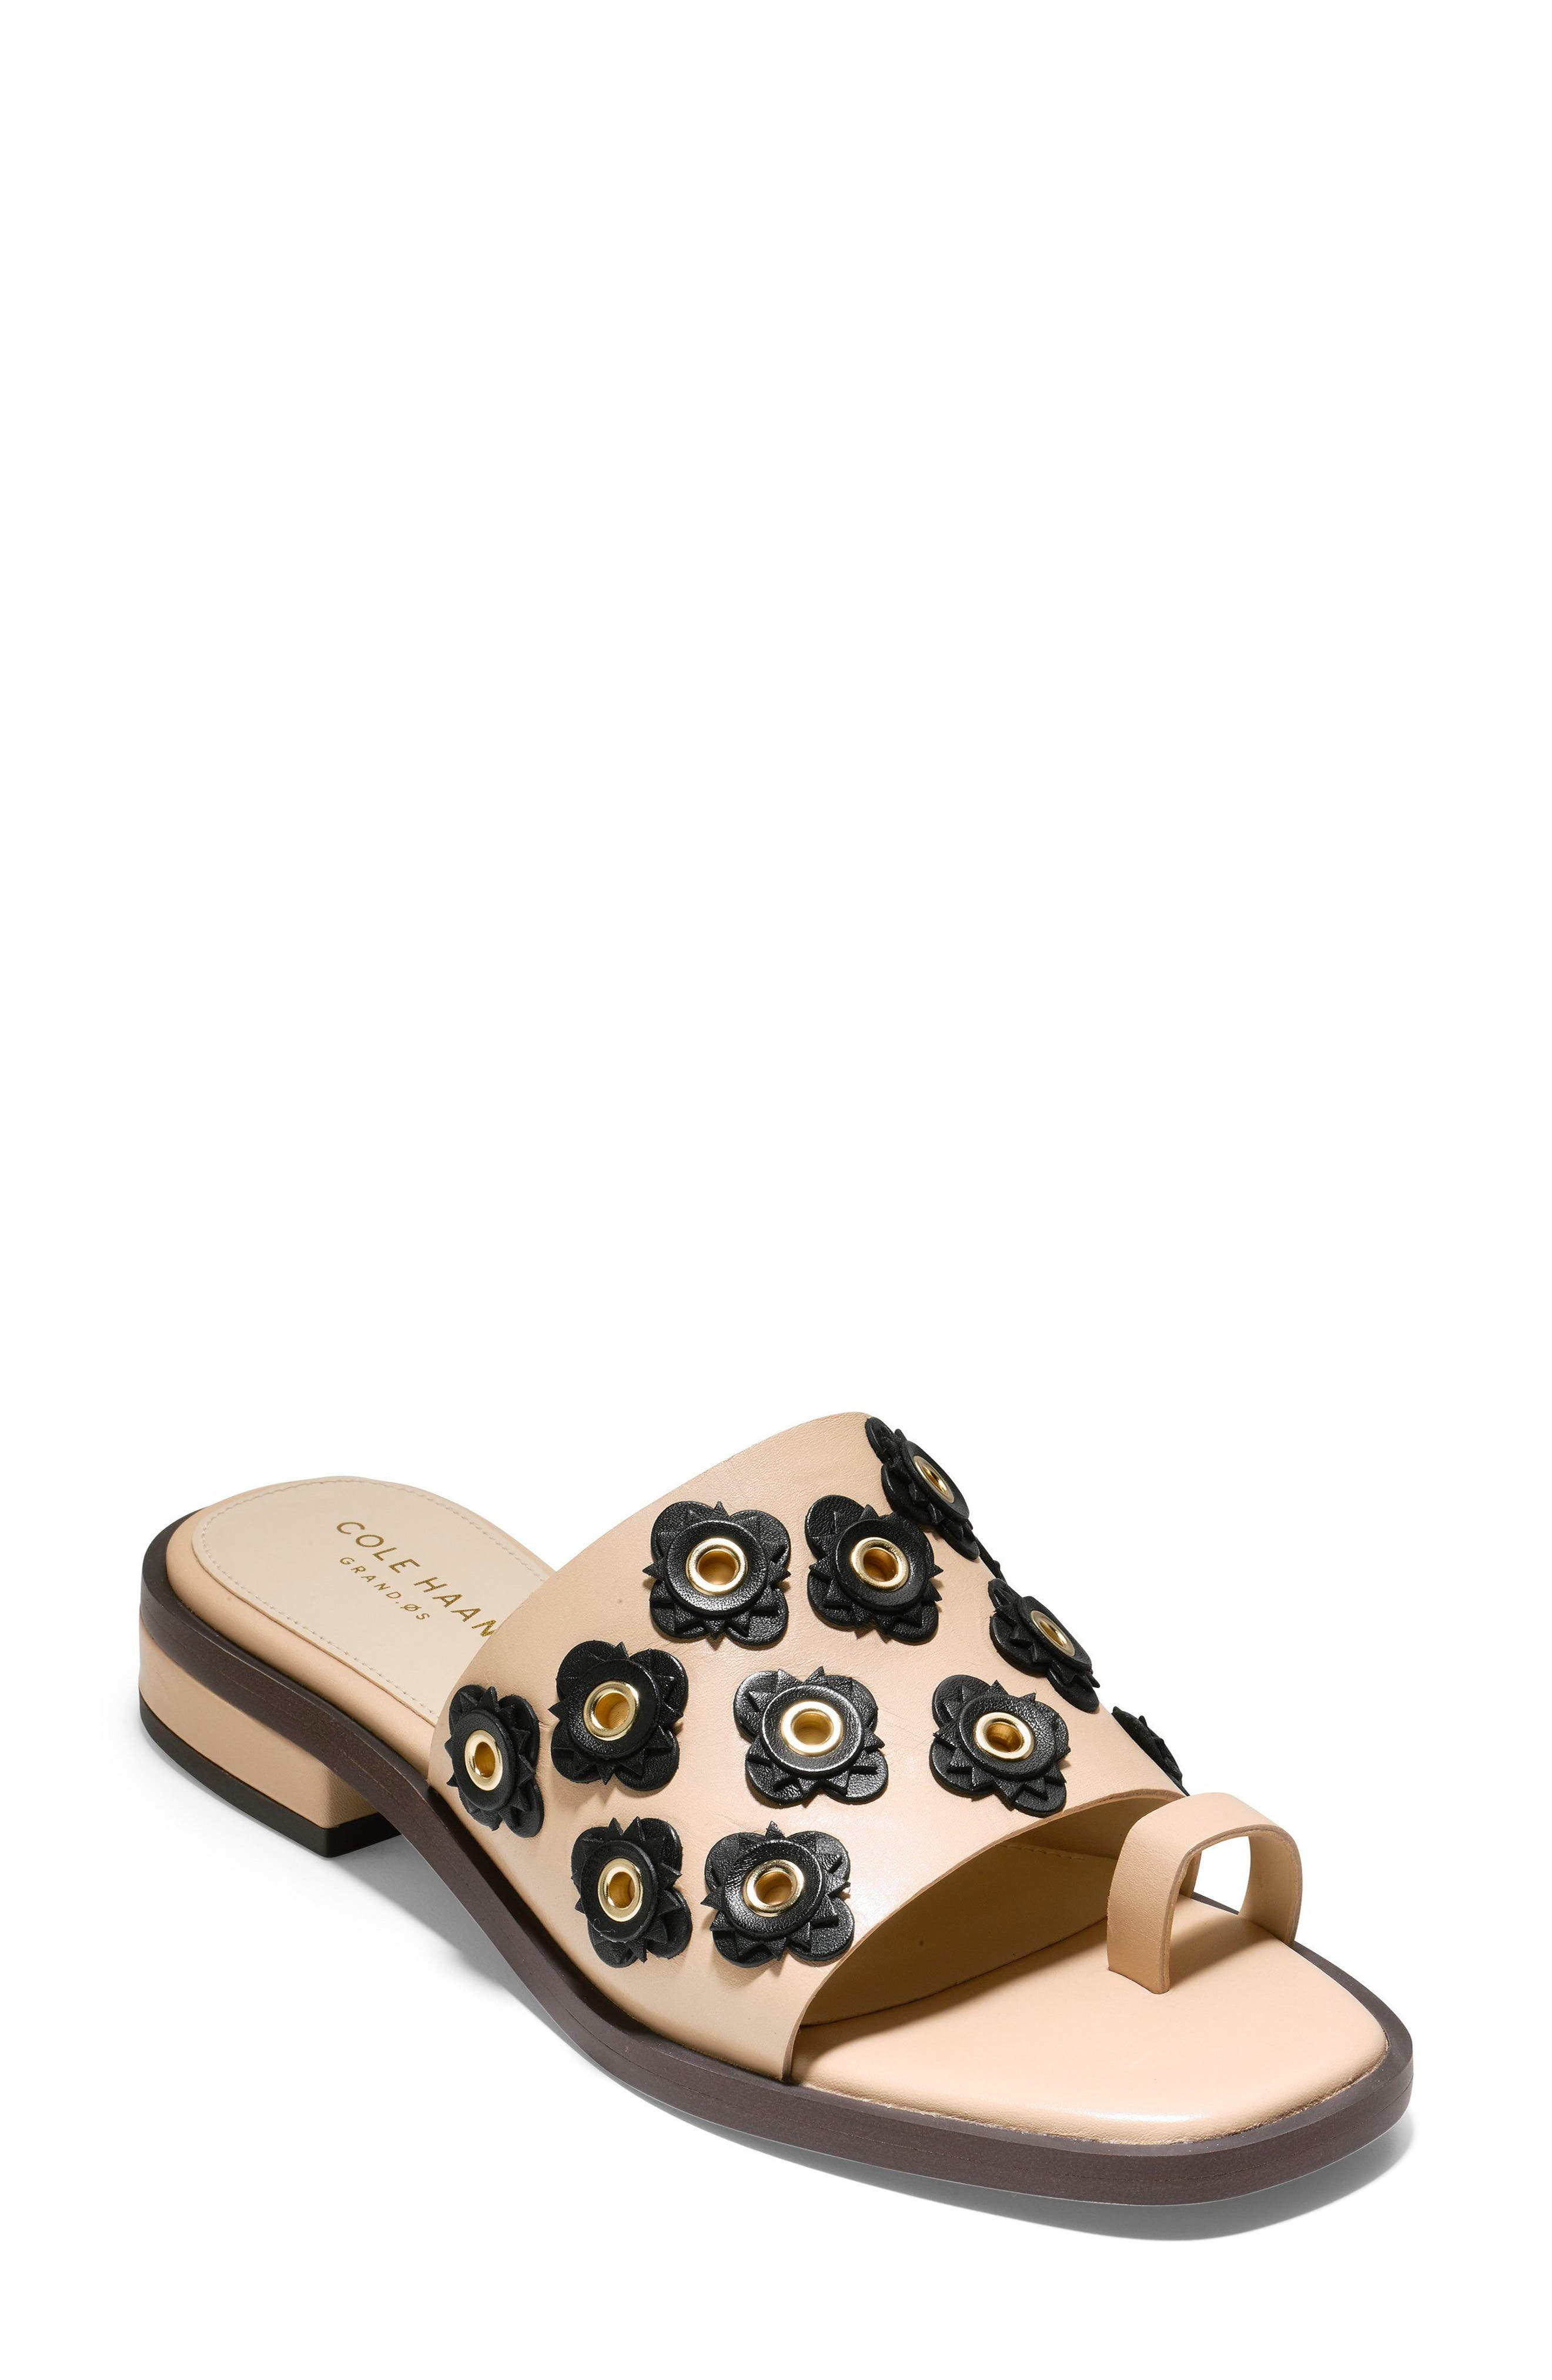 Carly Floral Sandal,                         Main,                         color, Nude/ Black Leather